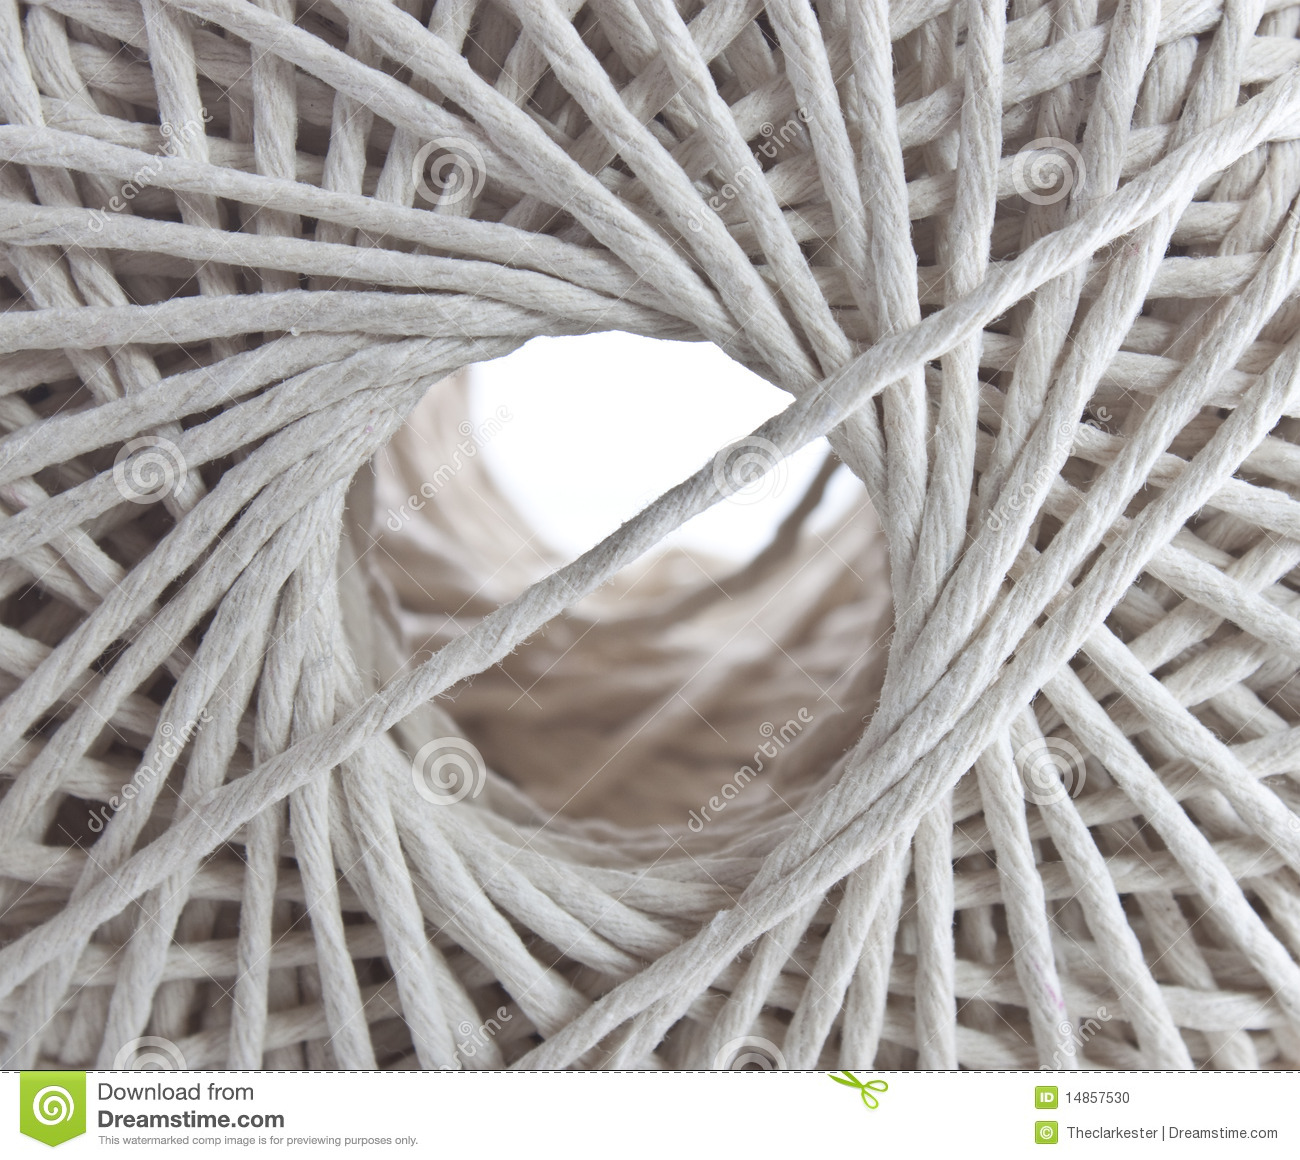 Looking through the centre of a ball of string